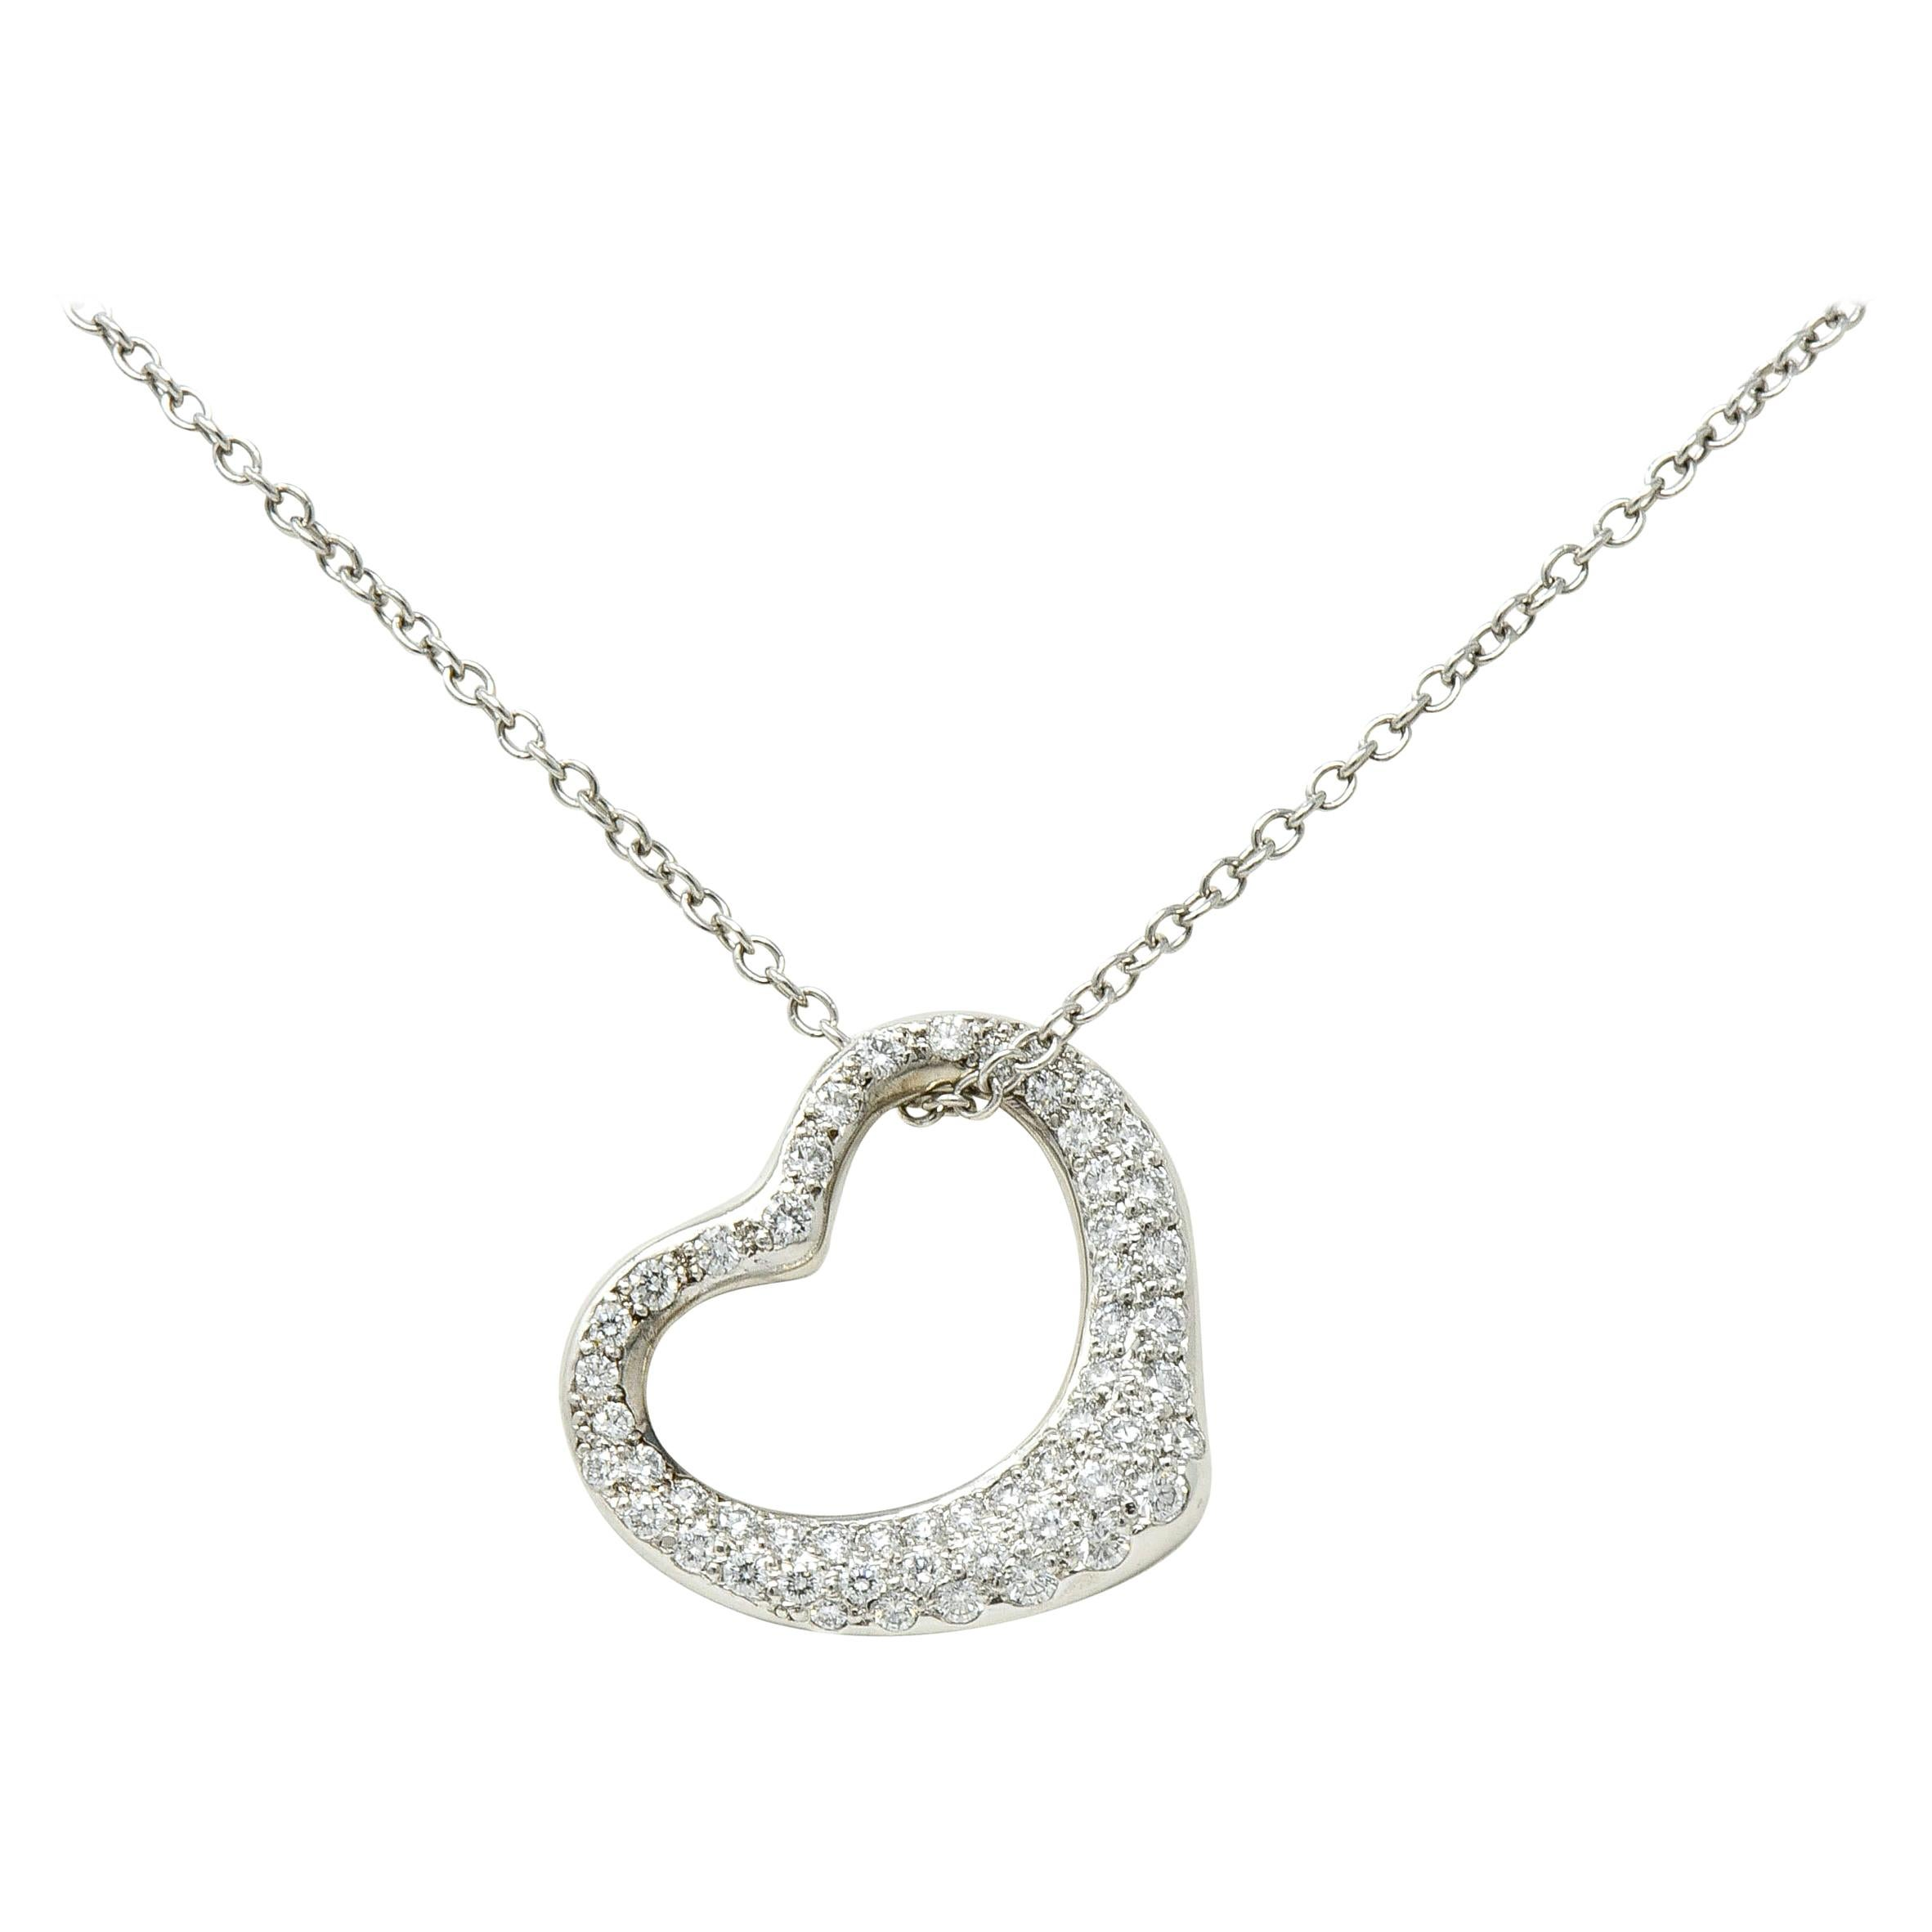 Elsa Peretti Tiffany & Co. Diamond Platinum Open Heart Pendant Necklace